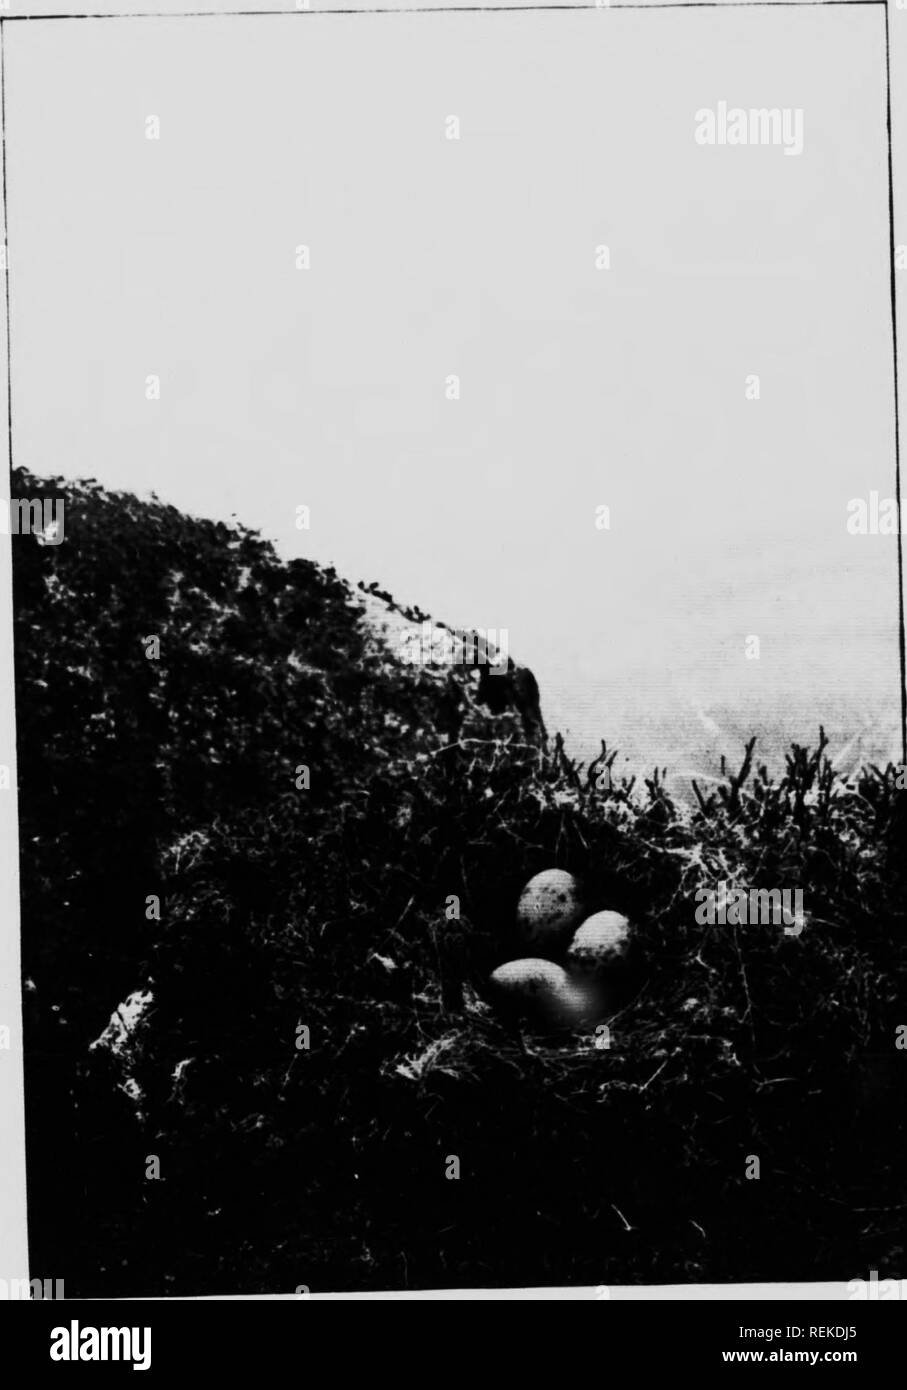 . Birds of the loch and mountain [microform]. Bird watching; Birds; Oiseaux; Oiseaux. NEST OF COMMON GULL. 0-4 THE t 'UE â F A L0:HA' ir-  I ' it.:! i : ill If. Please note that these images are extracted from scanned page images that may have been digitally enhanced for readability - coloration and appearance of these illustrations may not perfectly resemble the original work.. Gordon, Seton, 1886-1977. London ; Toronto : Cassell - Stock Image